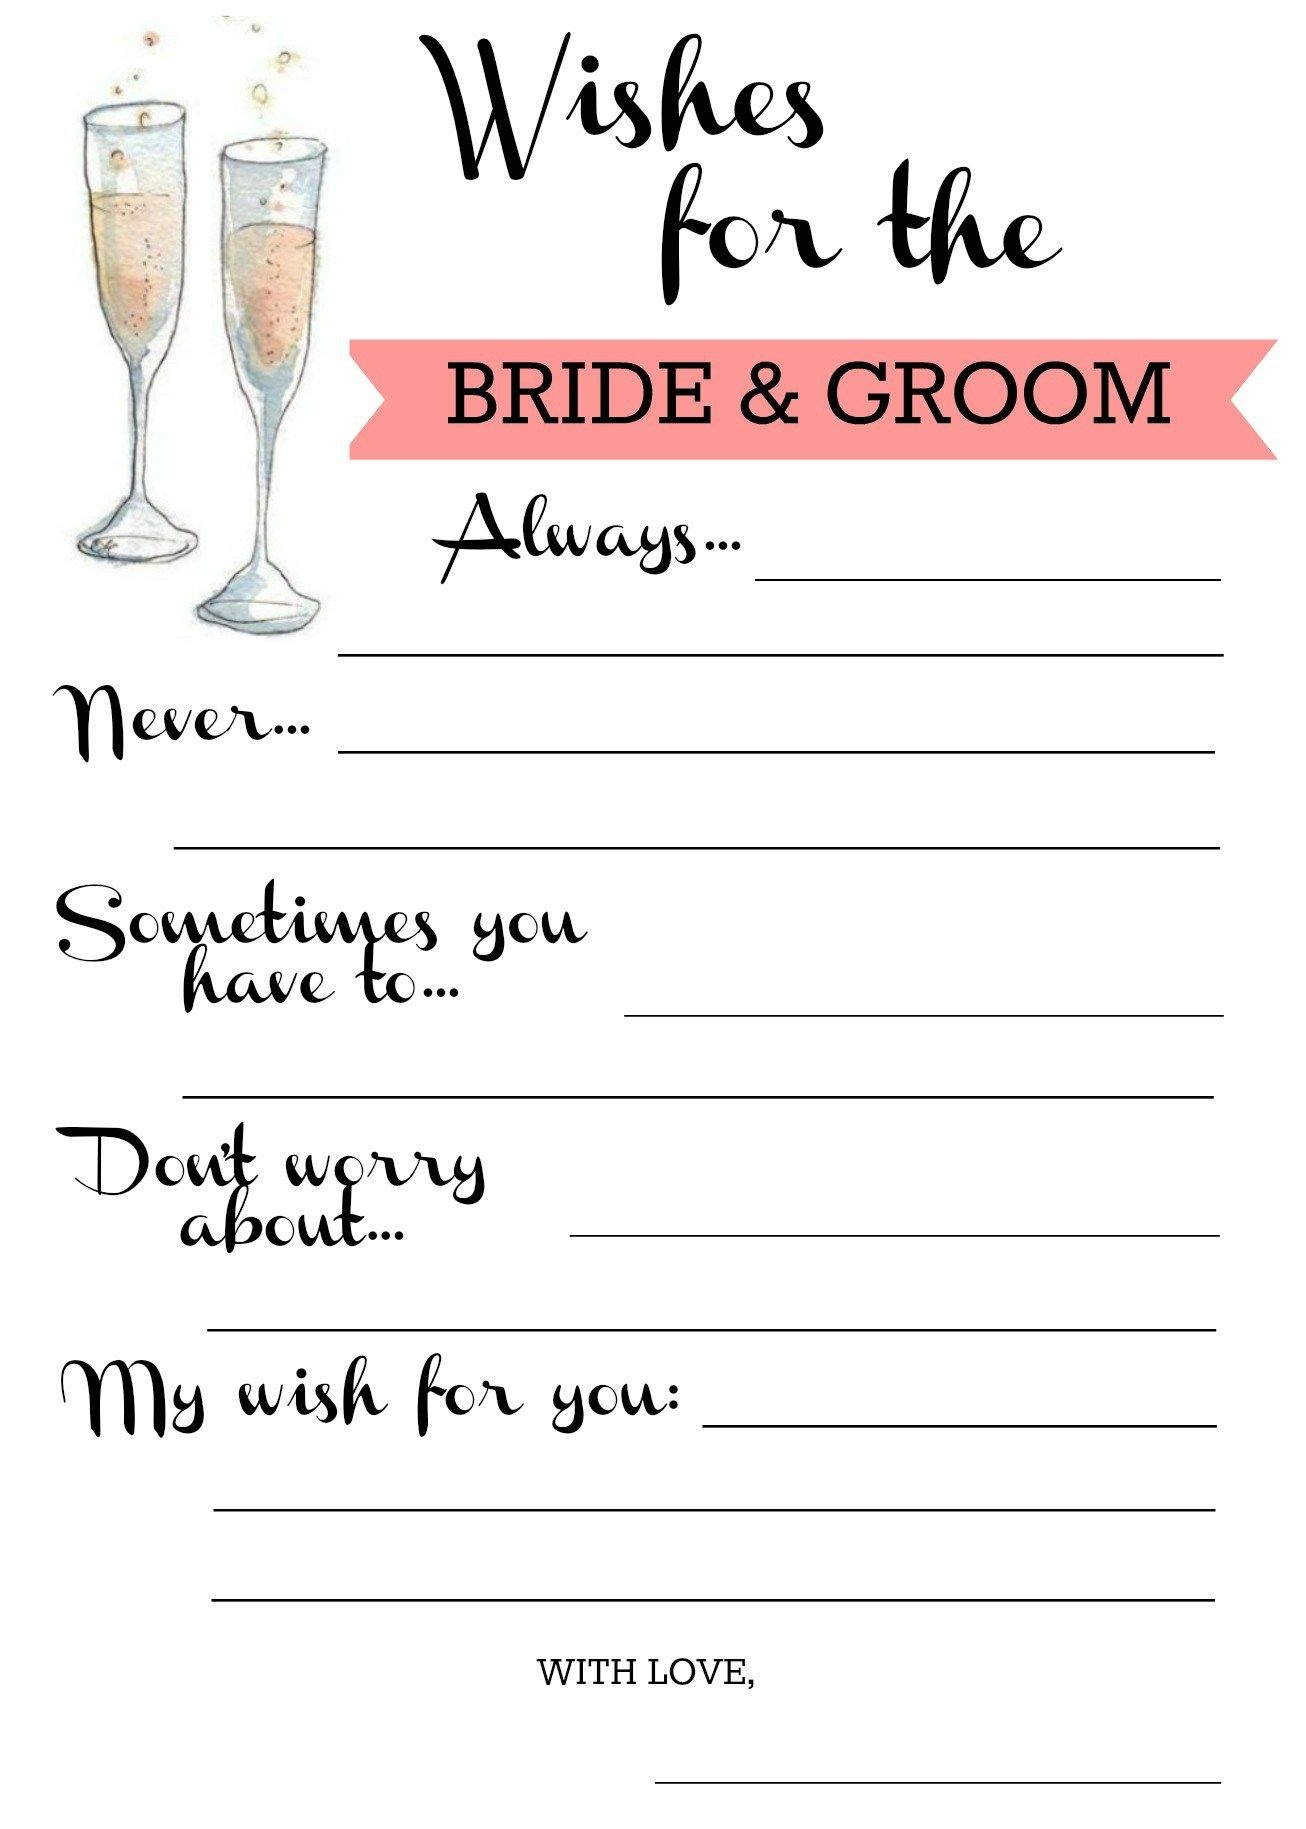 Wishes For Bride & Groom Free Printable | Lets Party In 2019 - Free Printable Bridal Shower Advice Cards